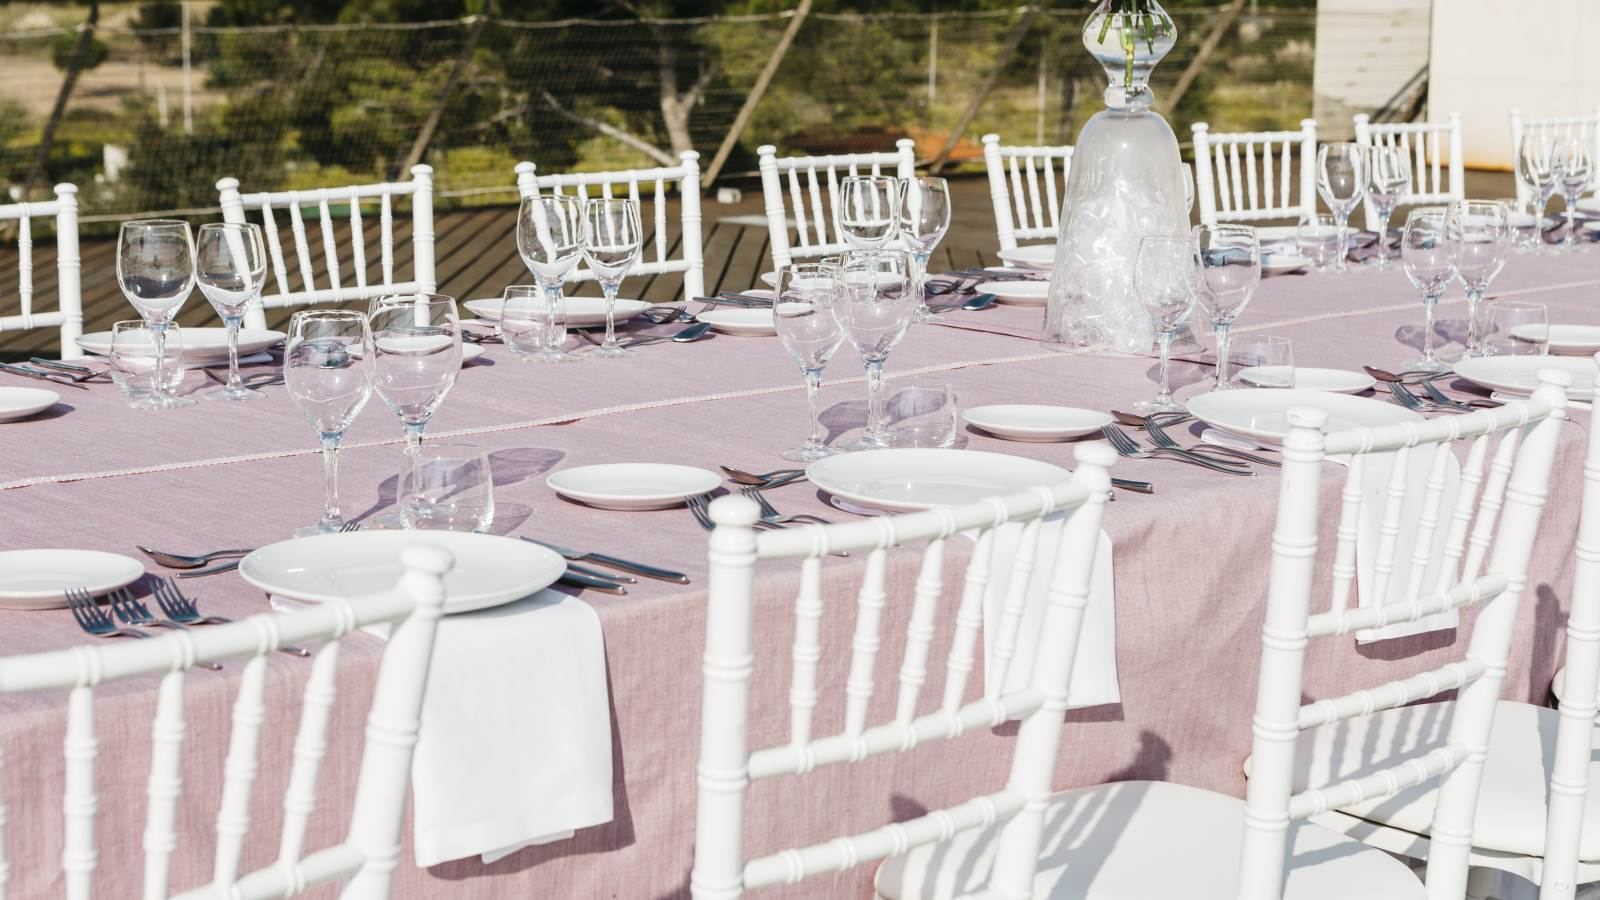 Outdoor wedding venues at Le Méridien Ra El Vendrell